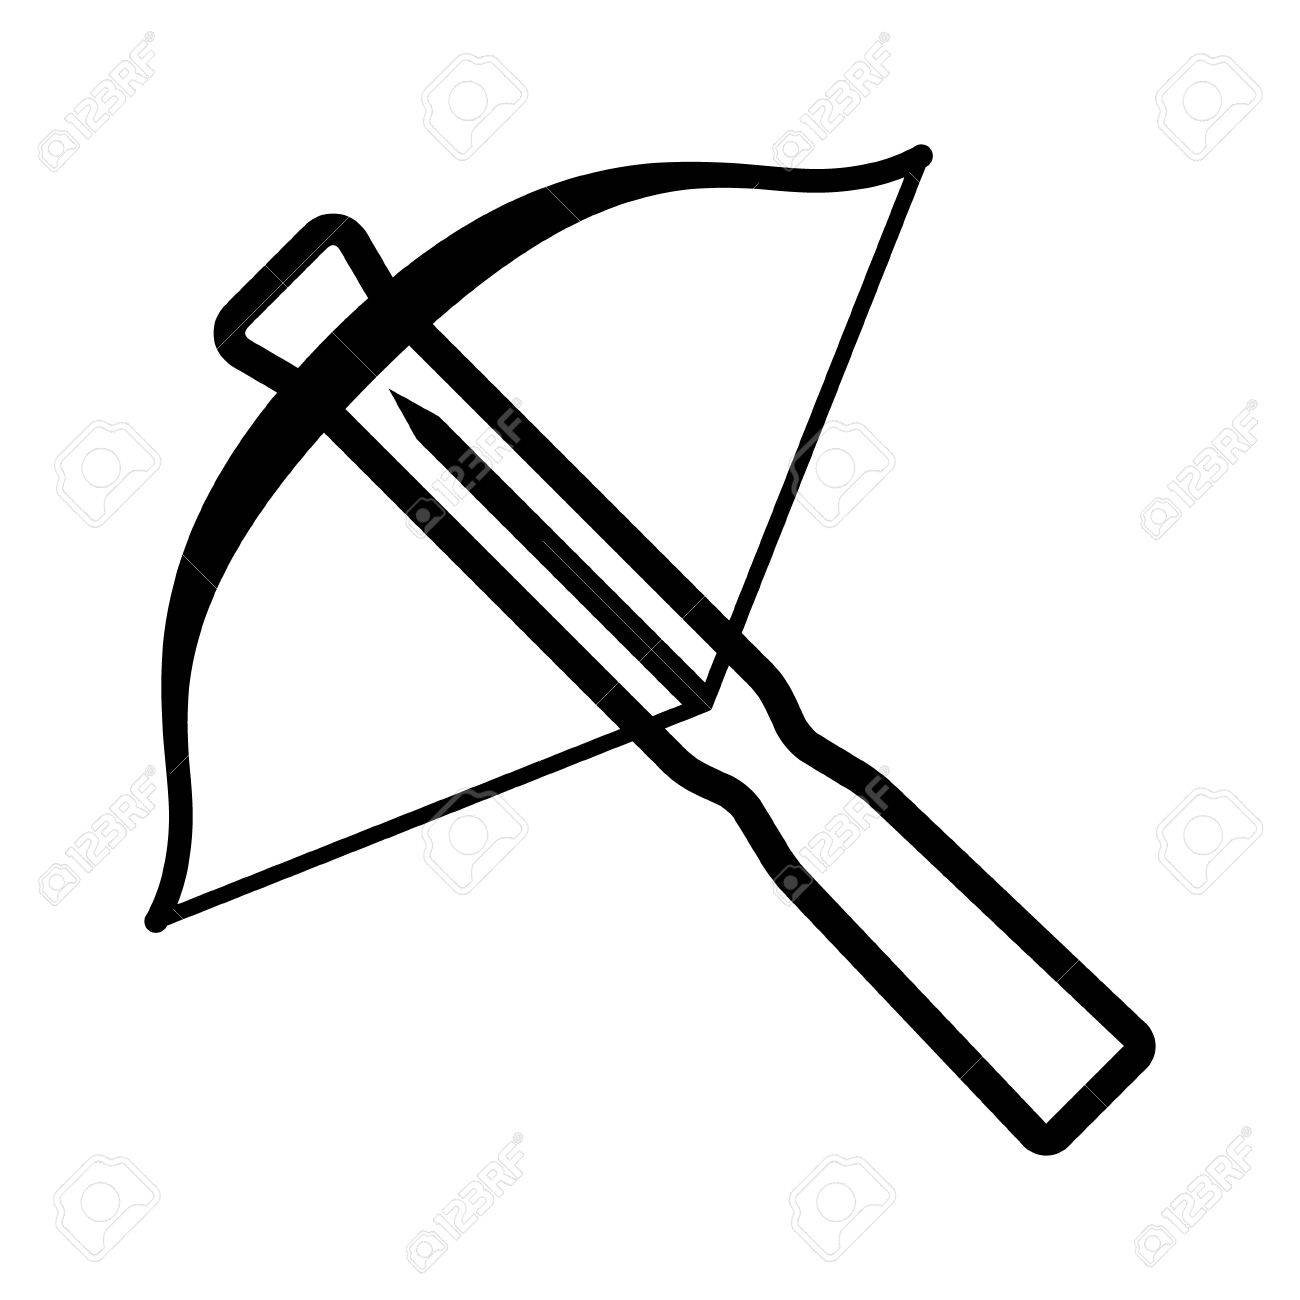 Clipart crossbow clip freeuse Crossbow clipart 1 » Clipart Station clip freeuse